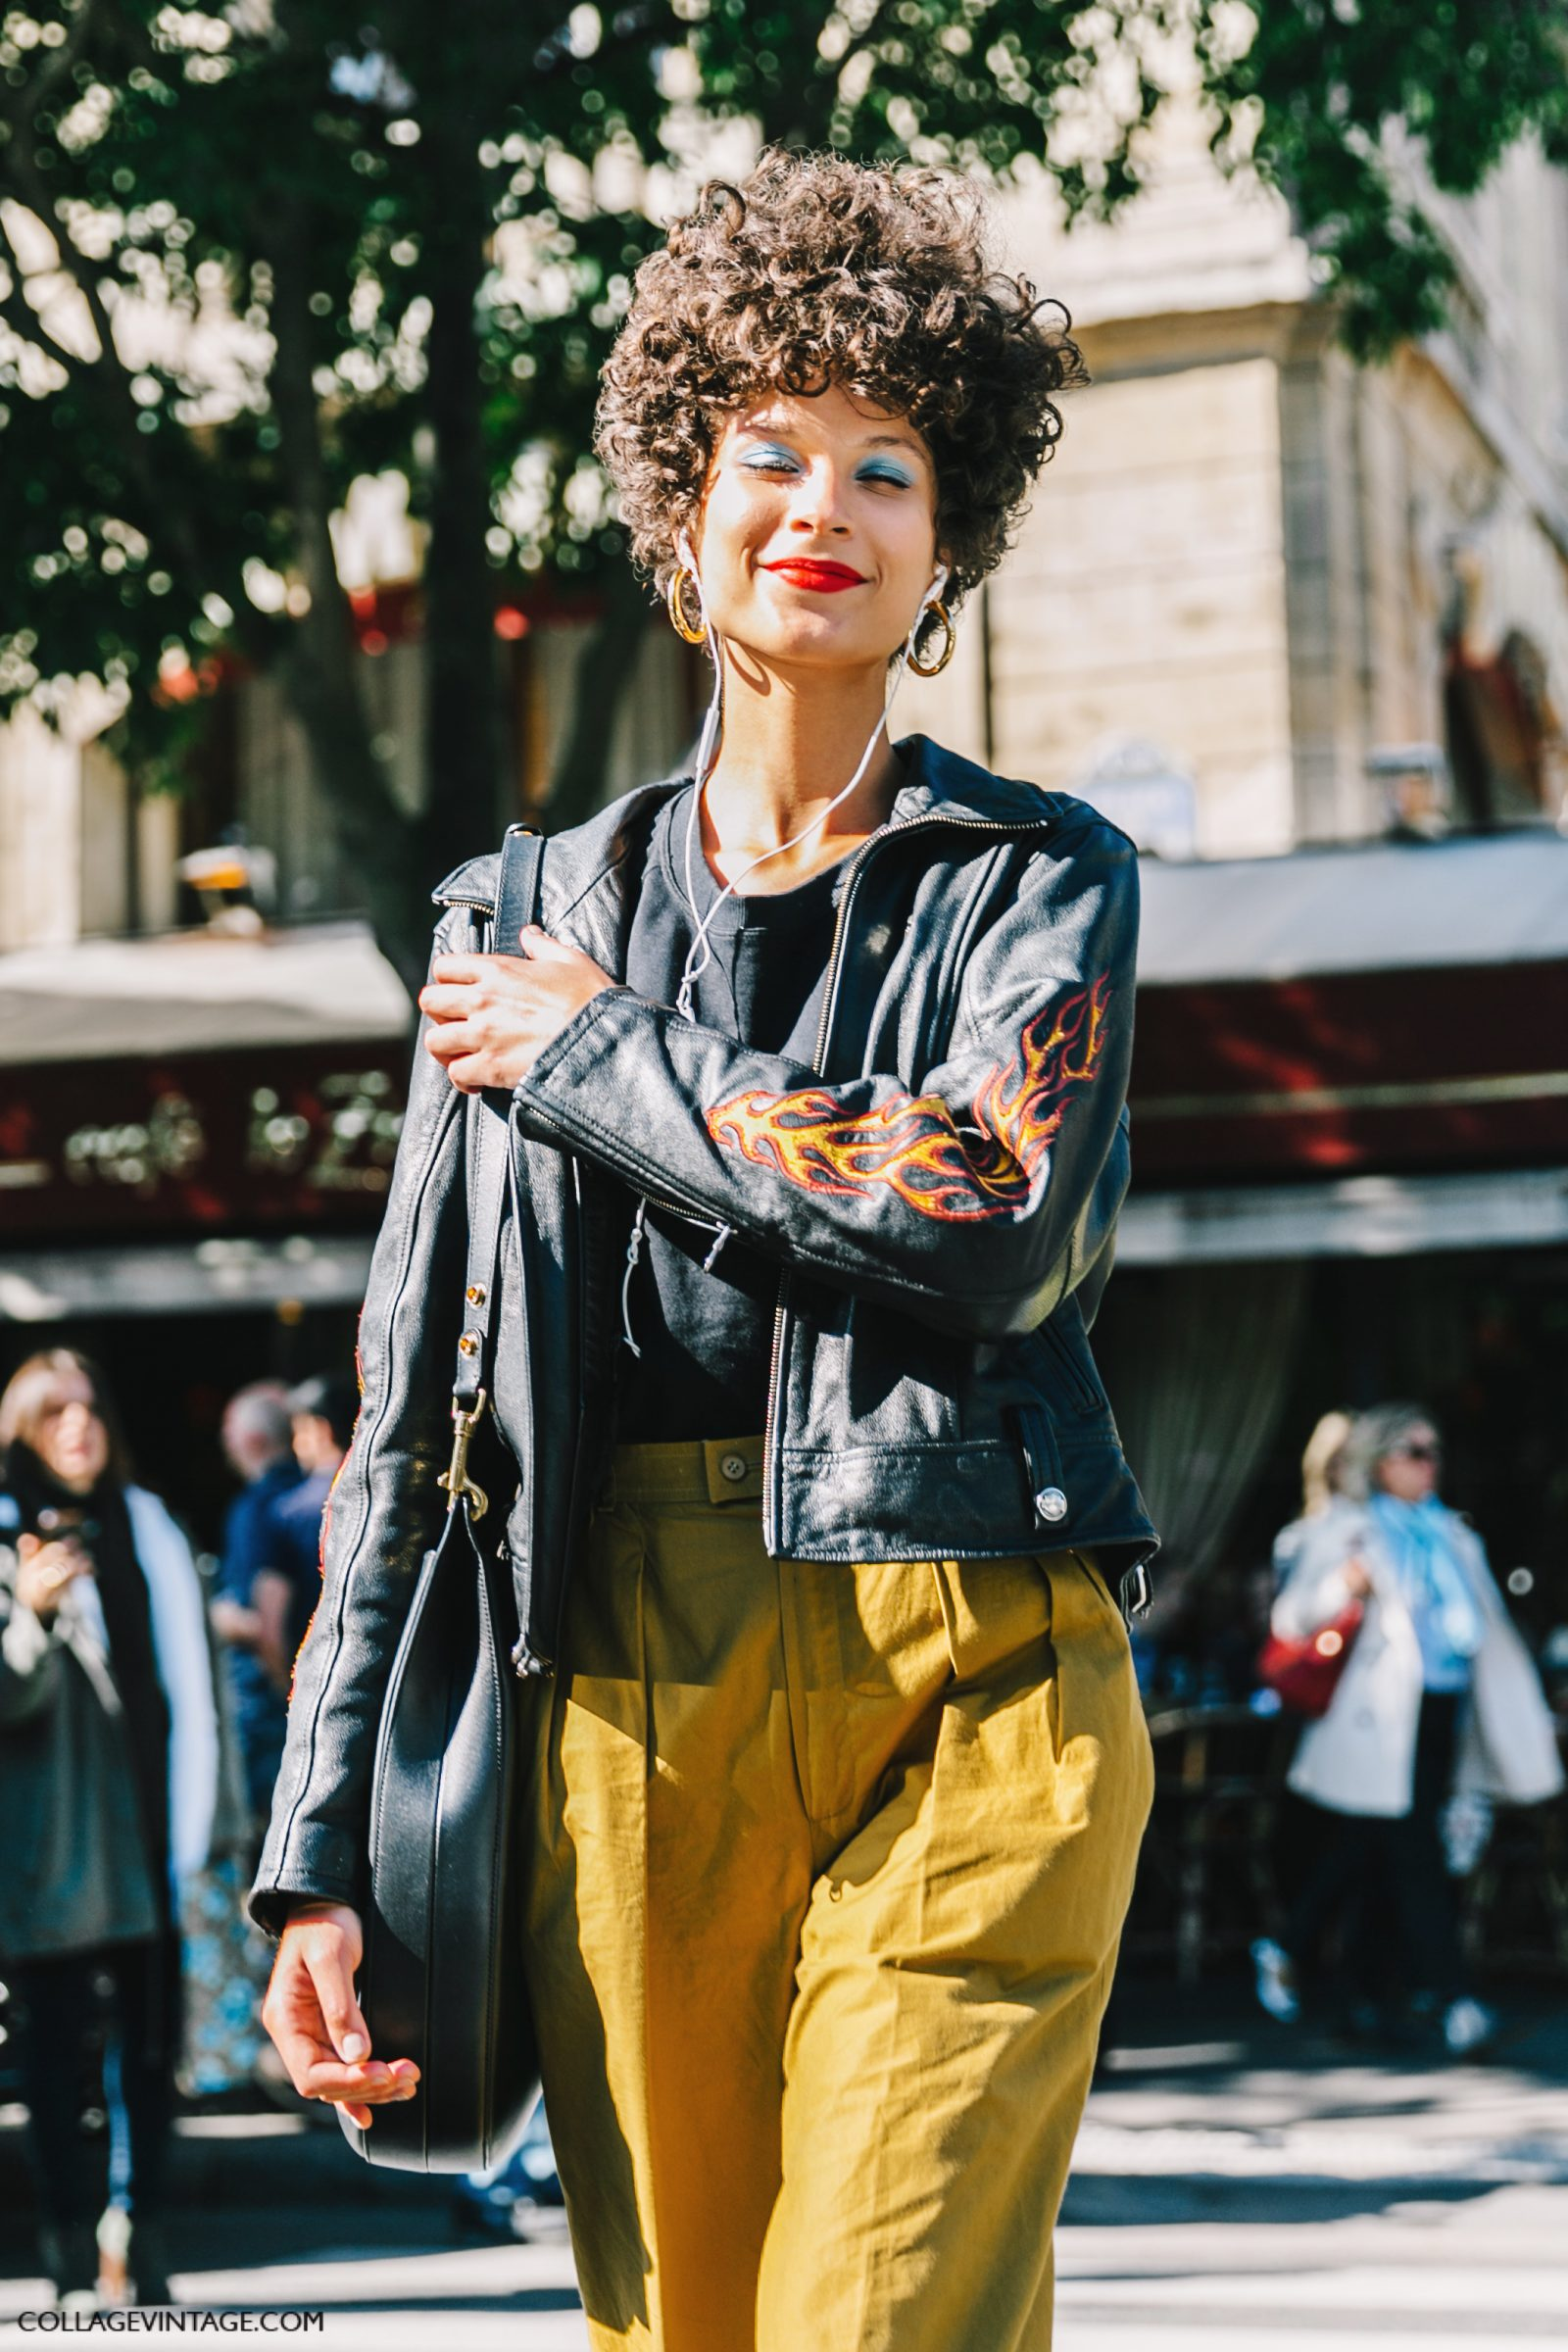 pfw-paris_fashion_week_ss17-street_style-outfits-collage_vintage-chanel-ellery-137